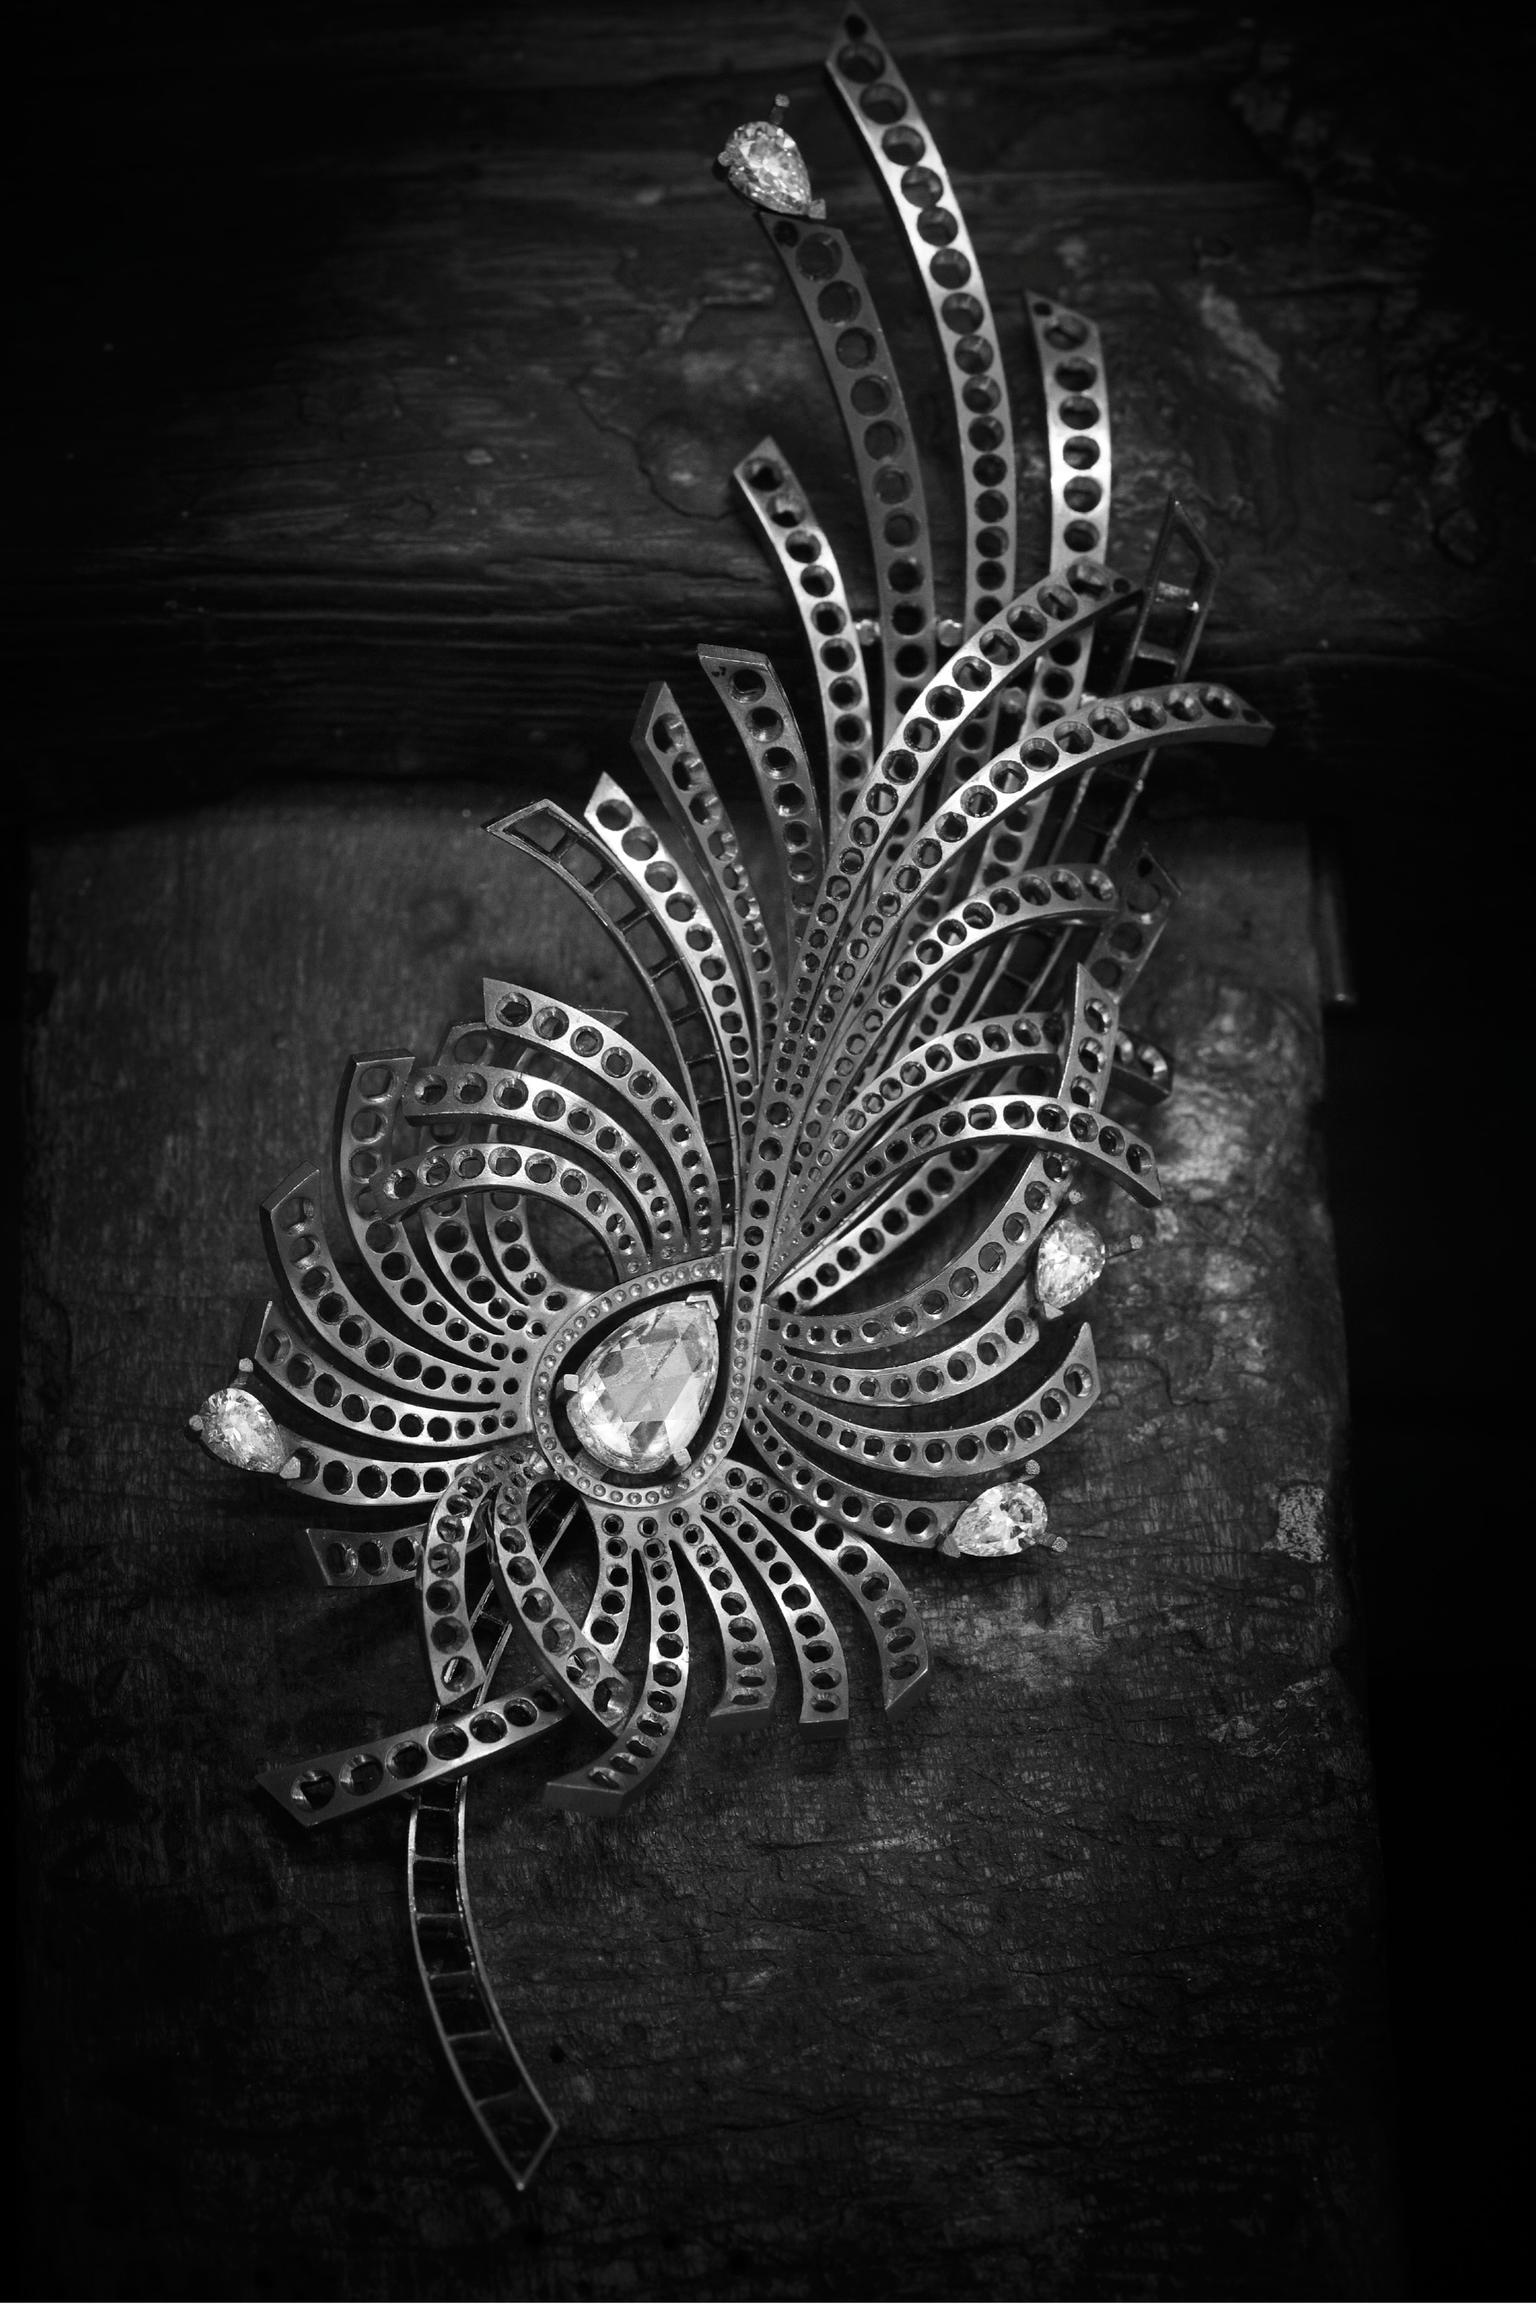 White gold and diamond brooch by Chanel